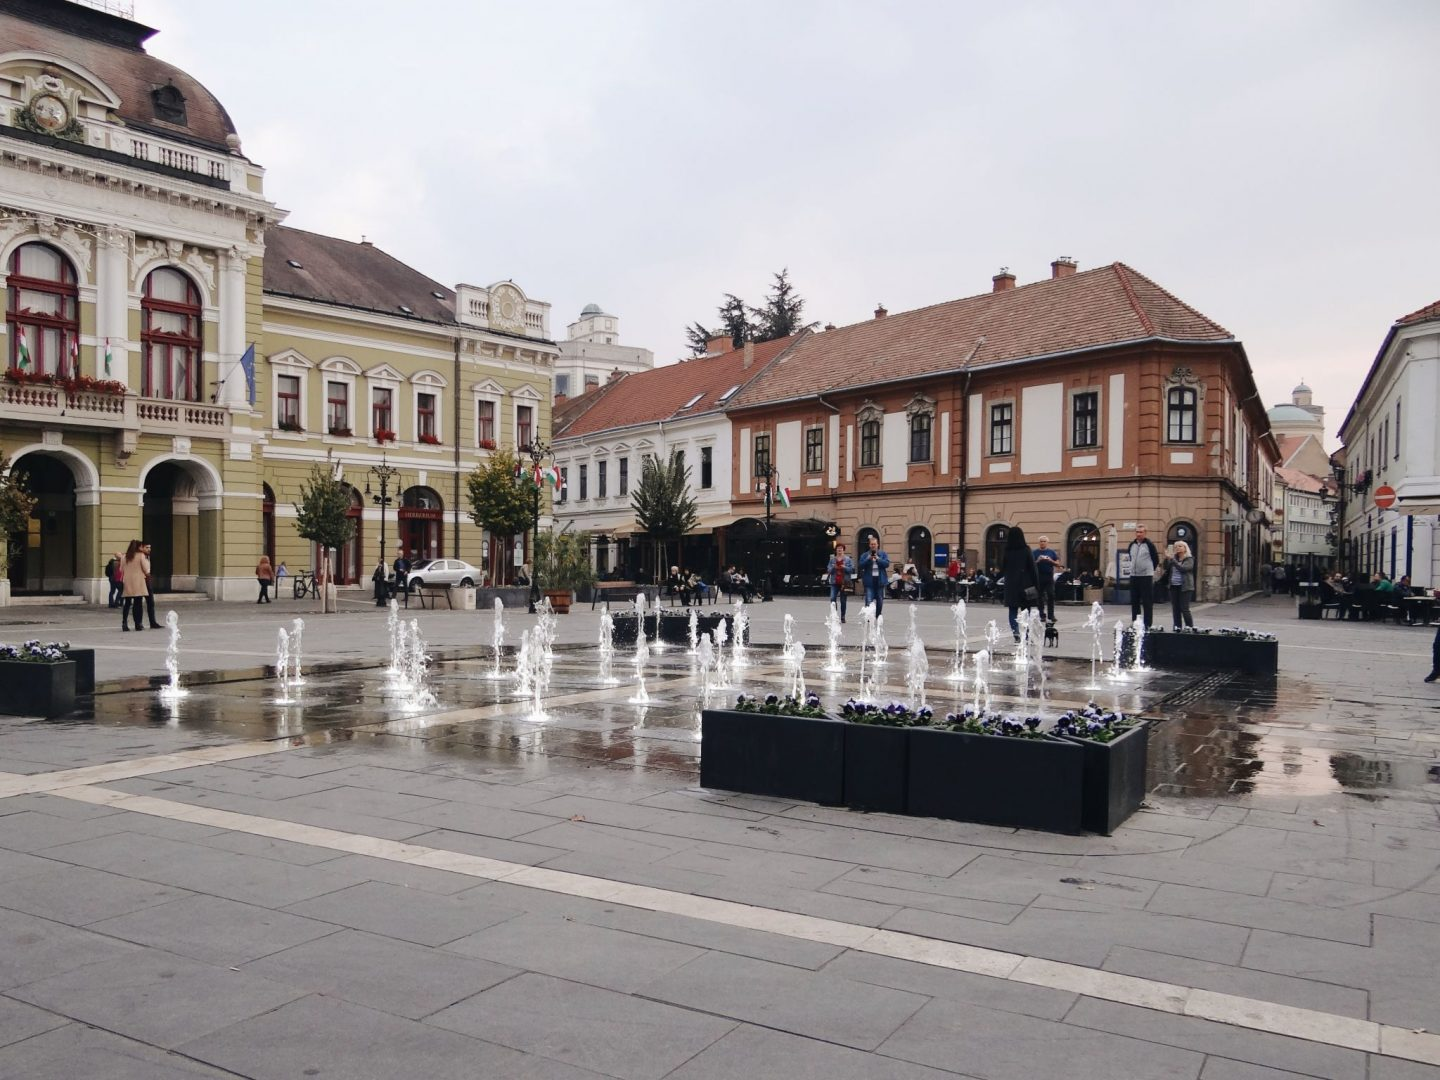 Fountain in Eger, Hungary